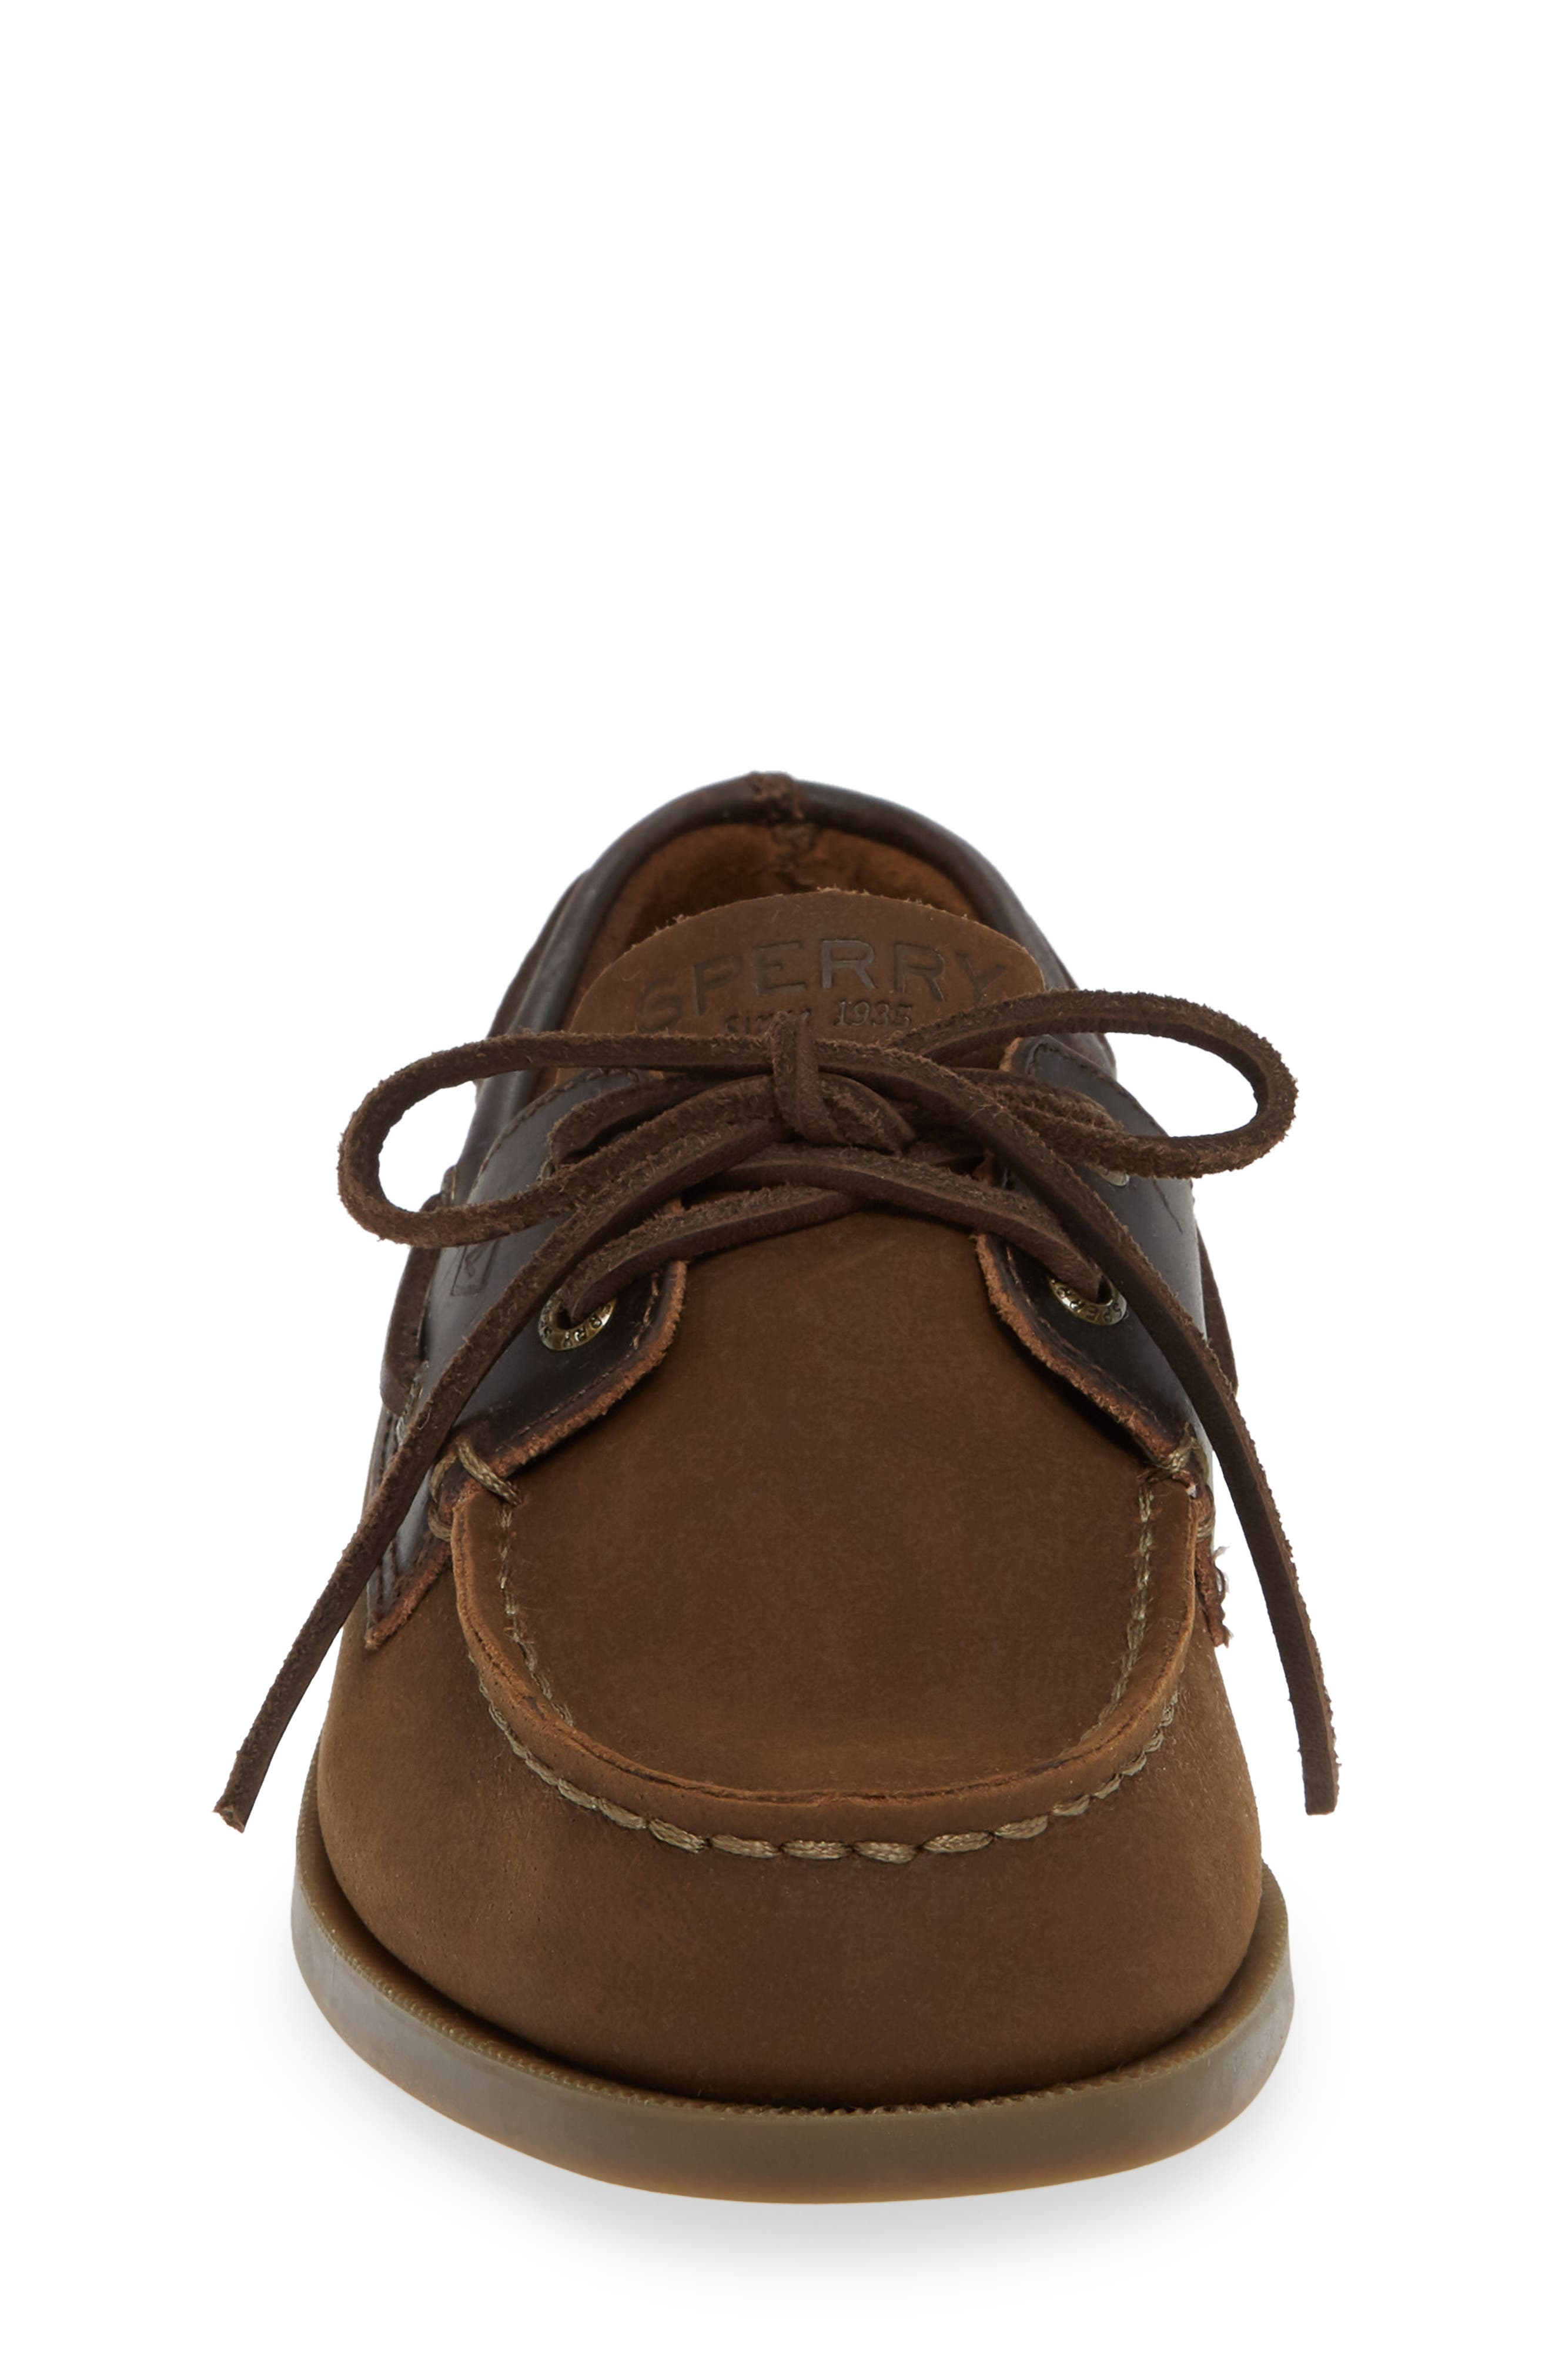 'Authentic Original' Boat Shoe,                             Alternate thumbnail 4, color,                             BROWN BUCK LEATHER